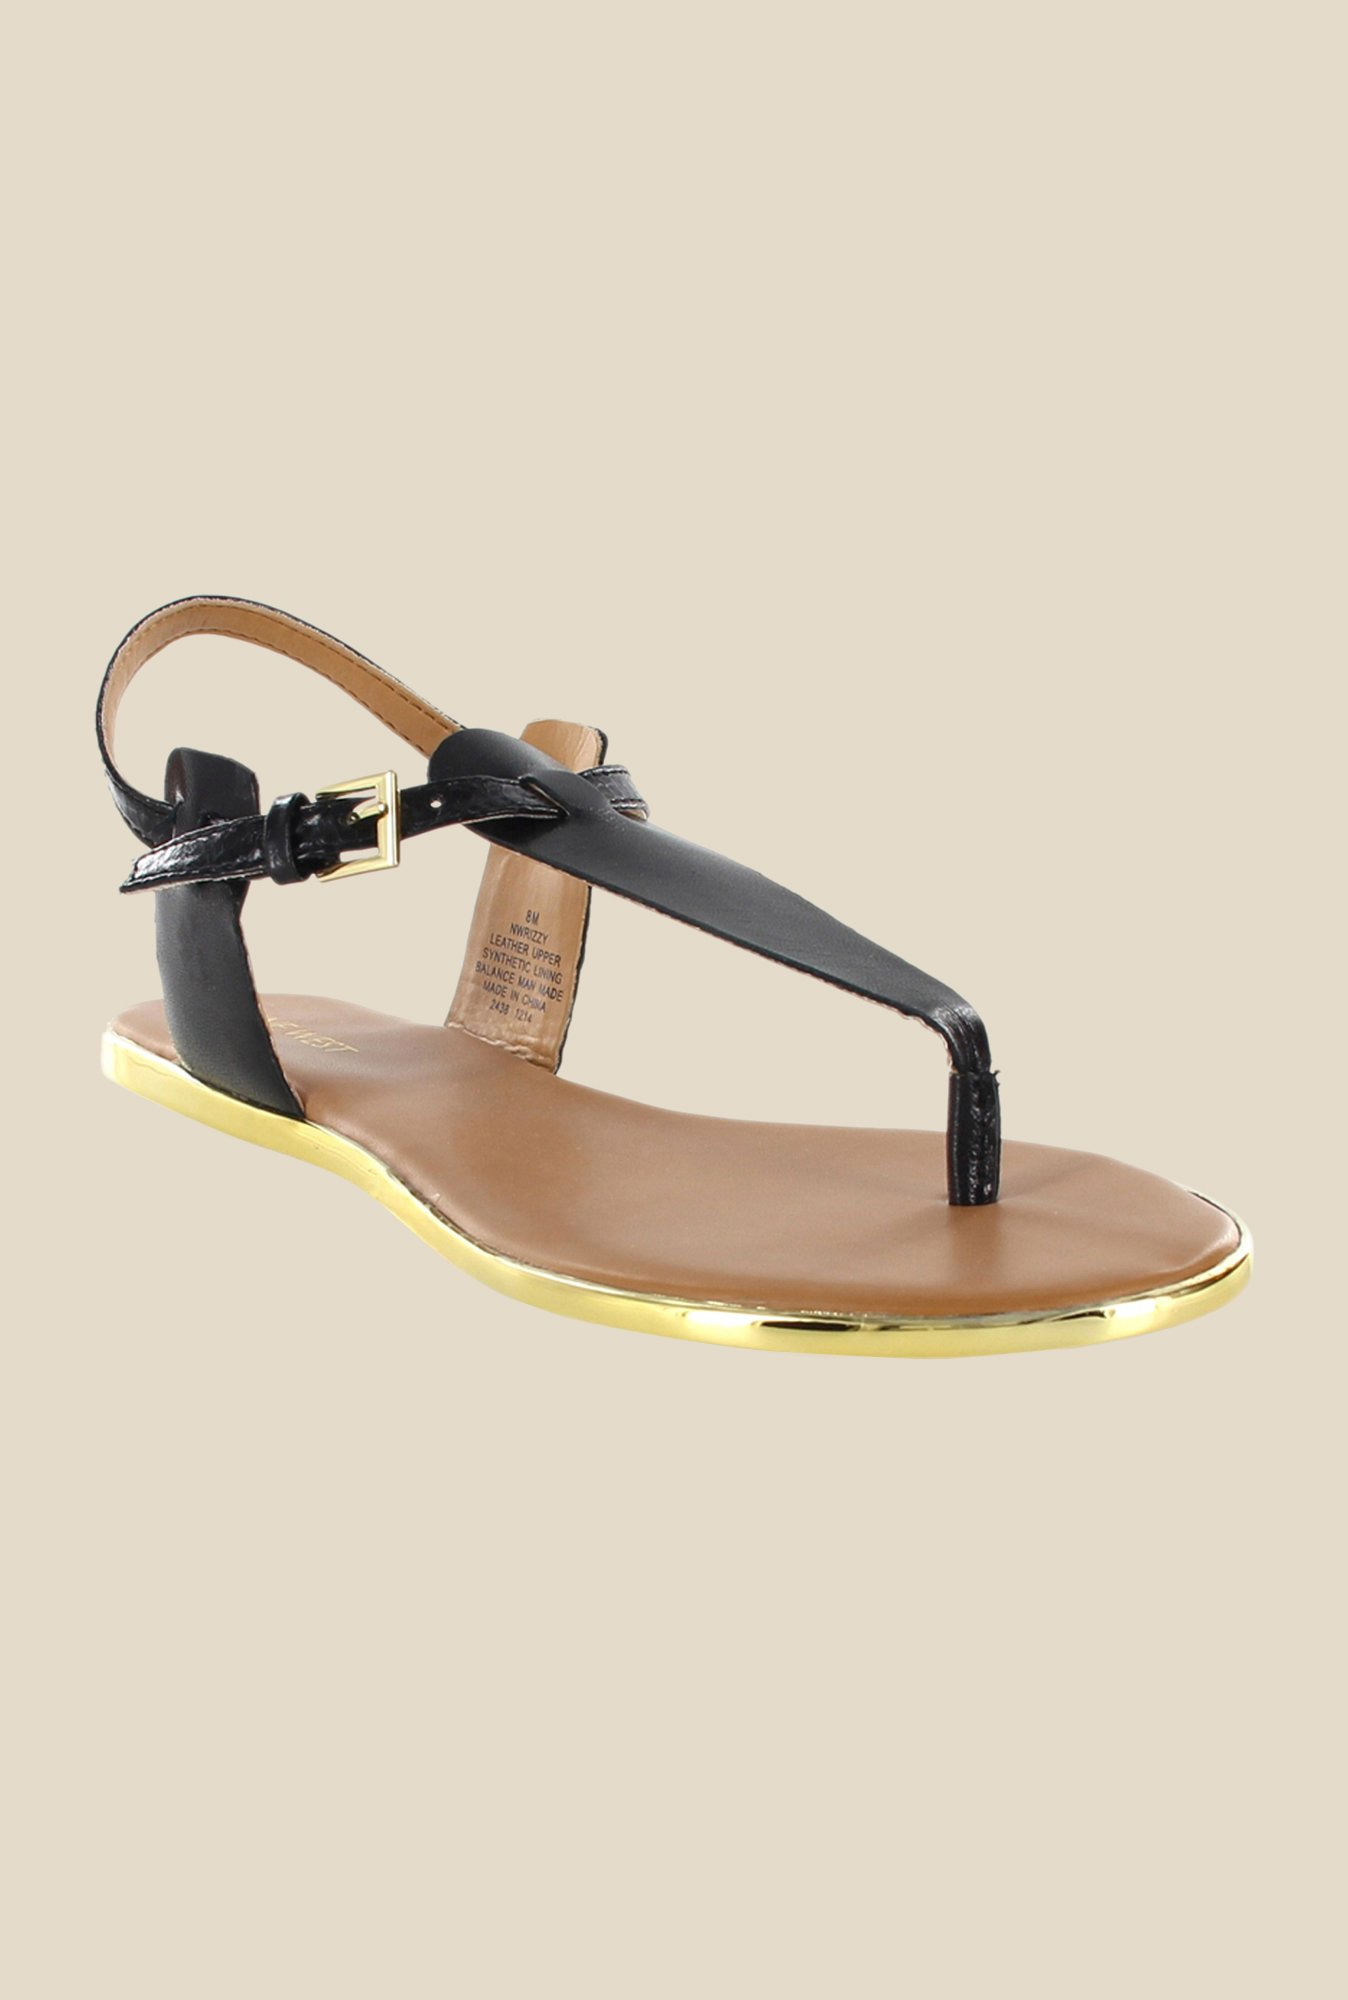 Nine West Black Ankle Strap Sandals